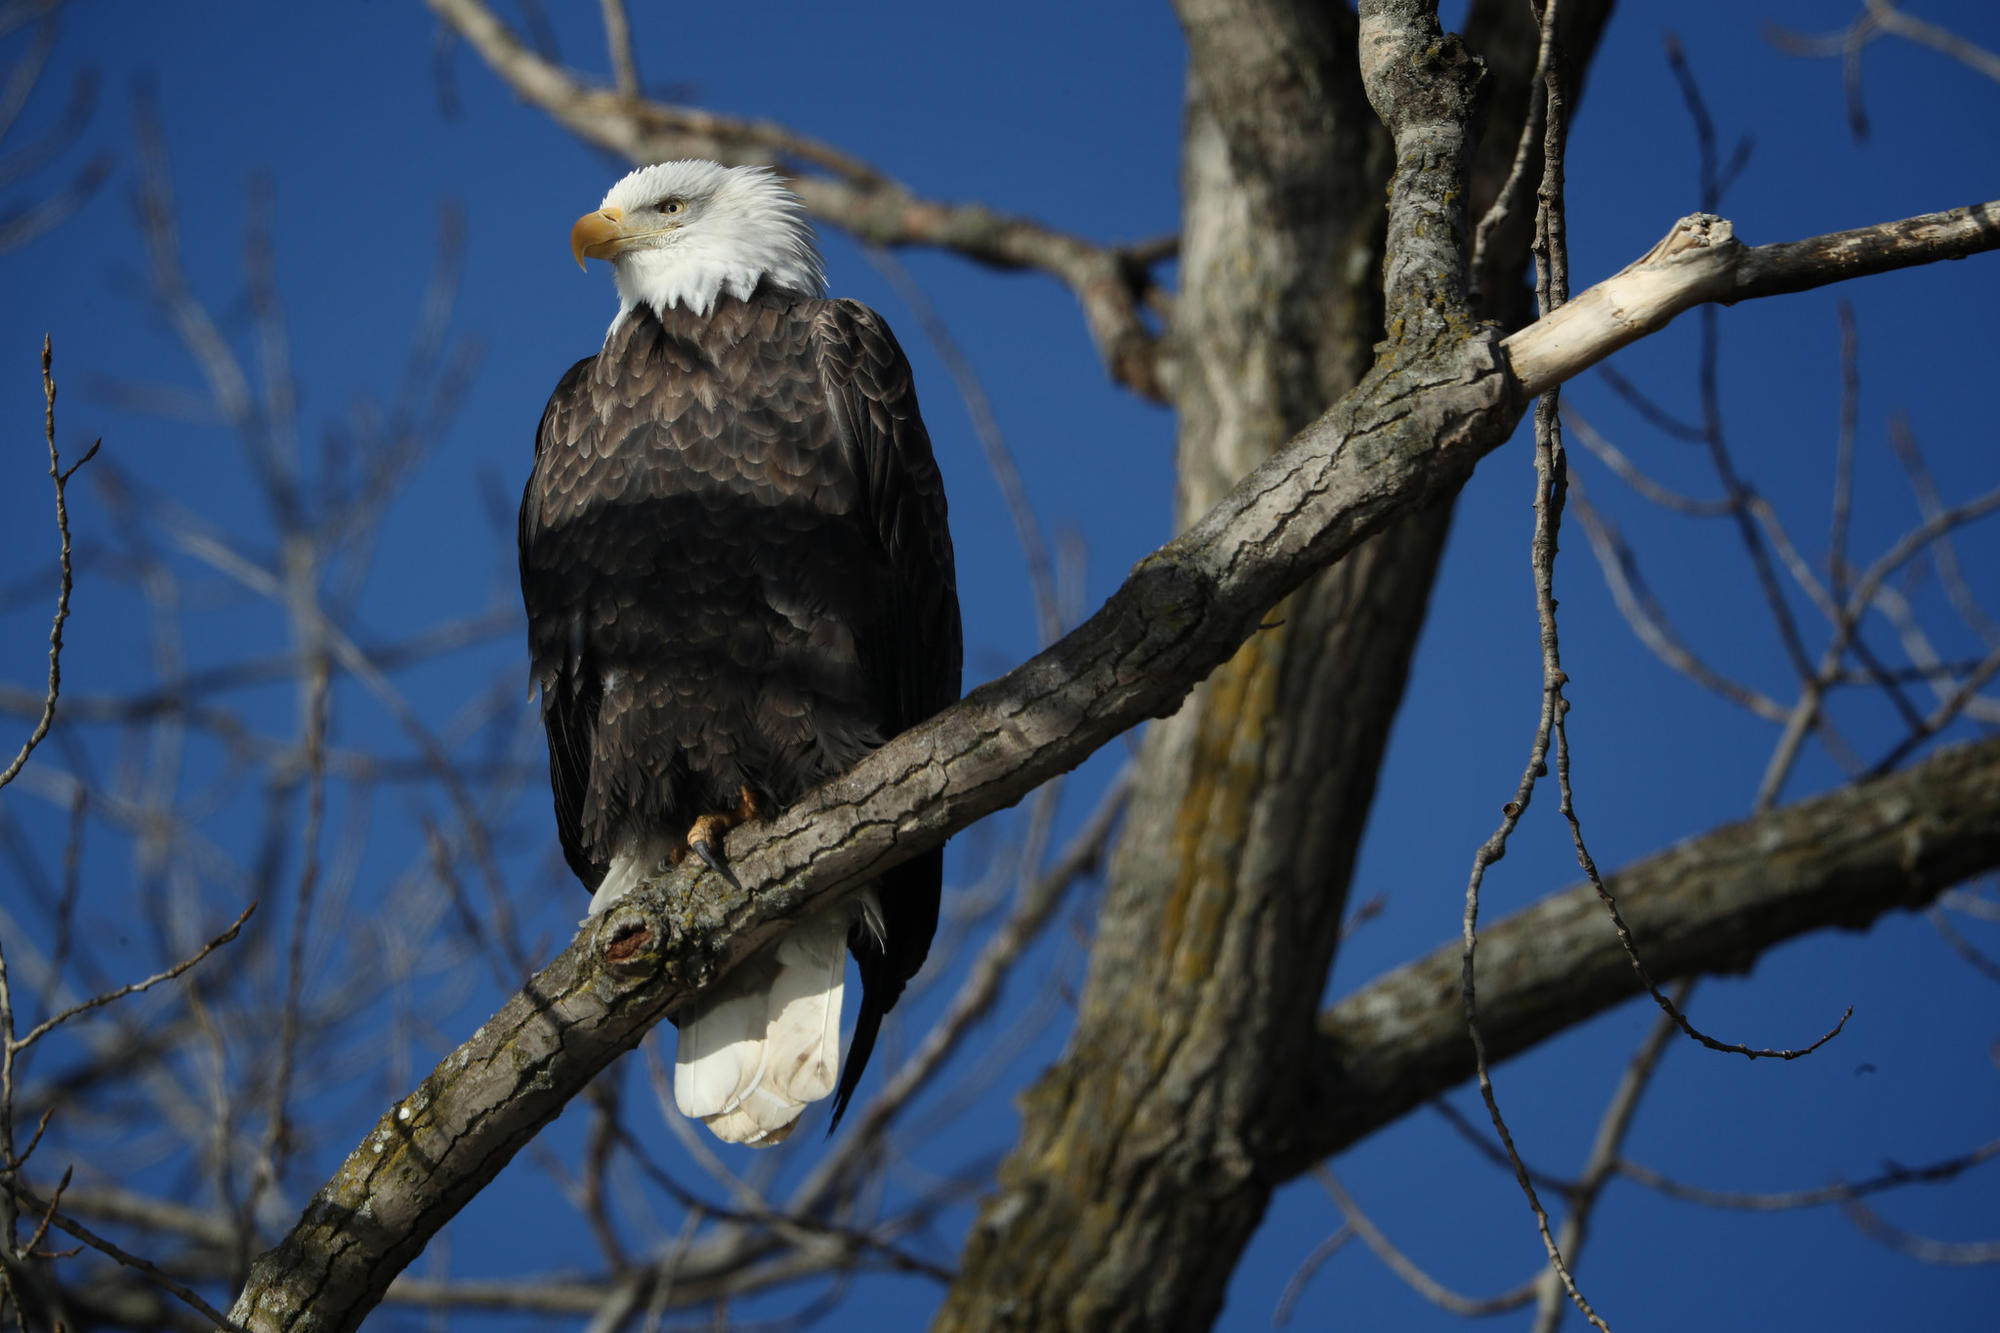 Bald eagles came back from brink but are numbers dropping again bald eagles came back from brink but are numbers dropping again an illinois researcher fears so chicago tribune biocorpaavc